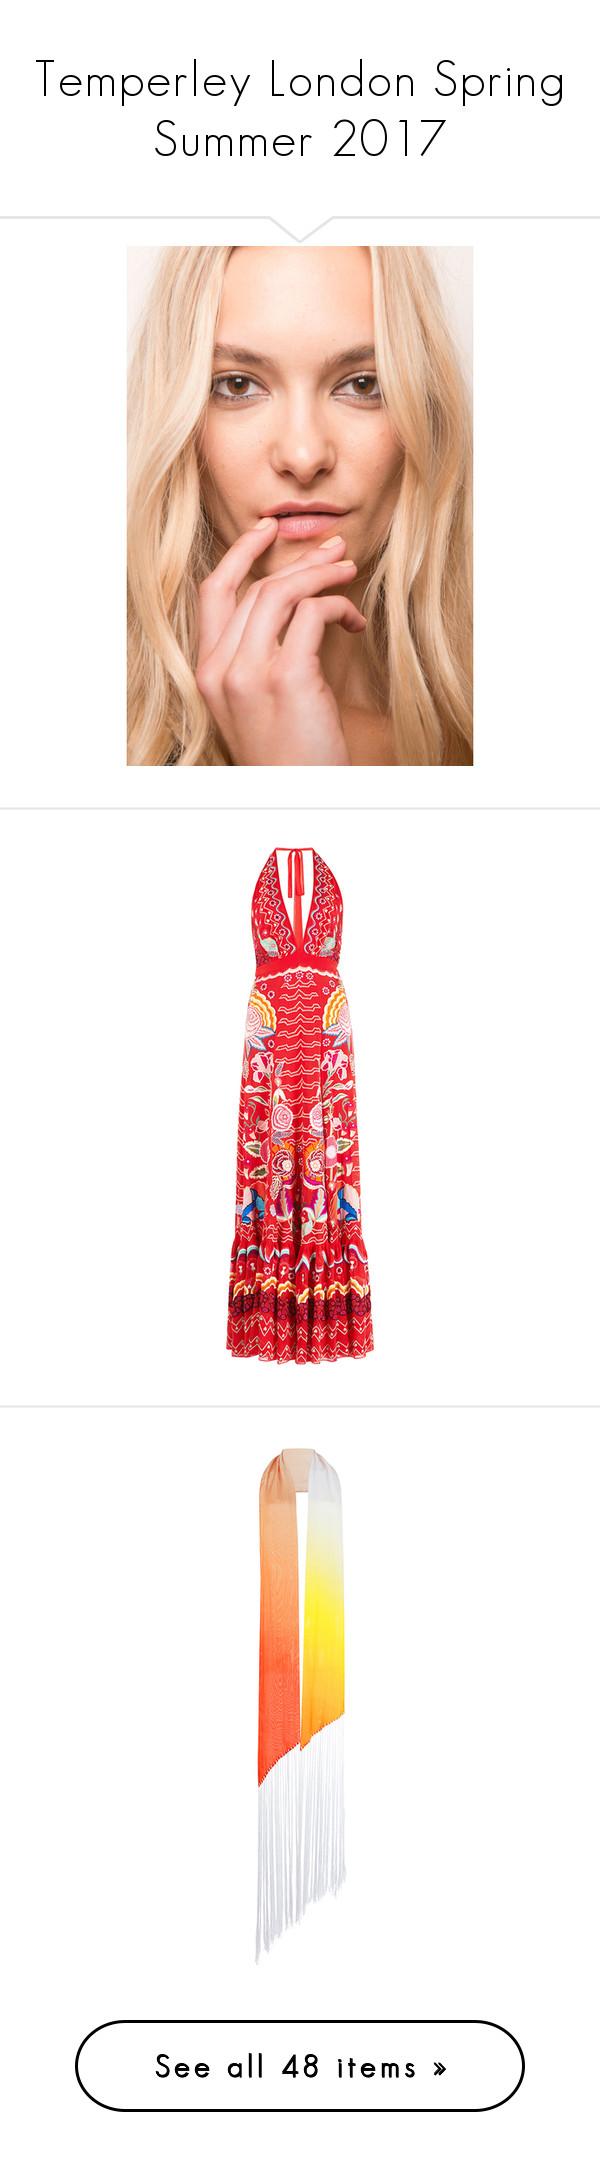 """""""Temperley London Spring Summer 2017"""" by enam ❤ liked on Polyvore featuring logo, text, dresses, red, a line flared dress, embroidered dress, red v neck dress, temperley london dress, red a line dress and accessories"""